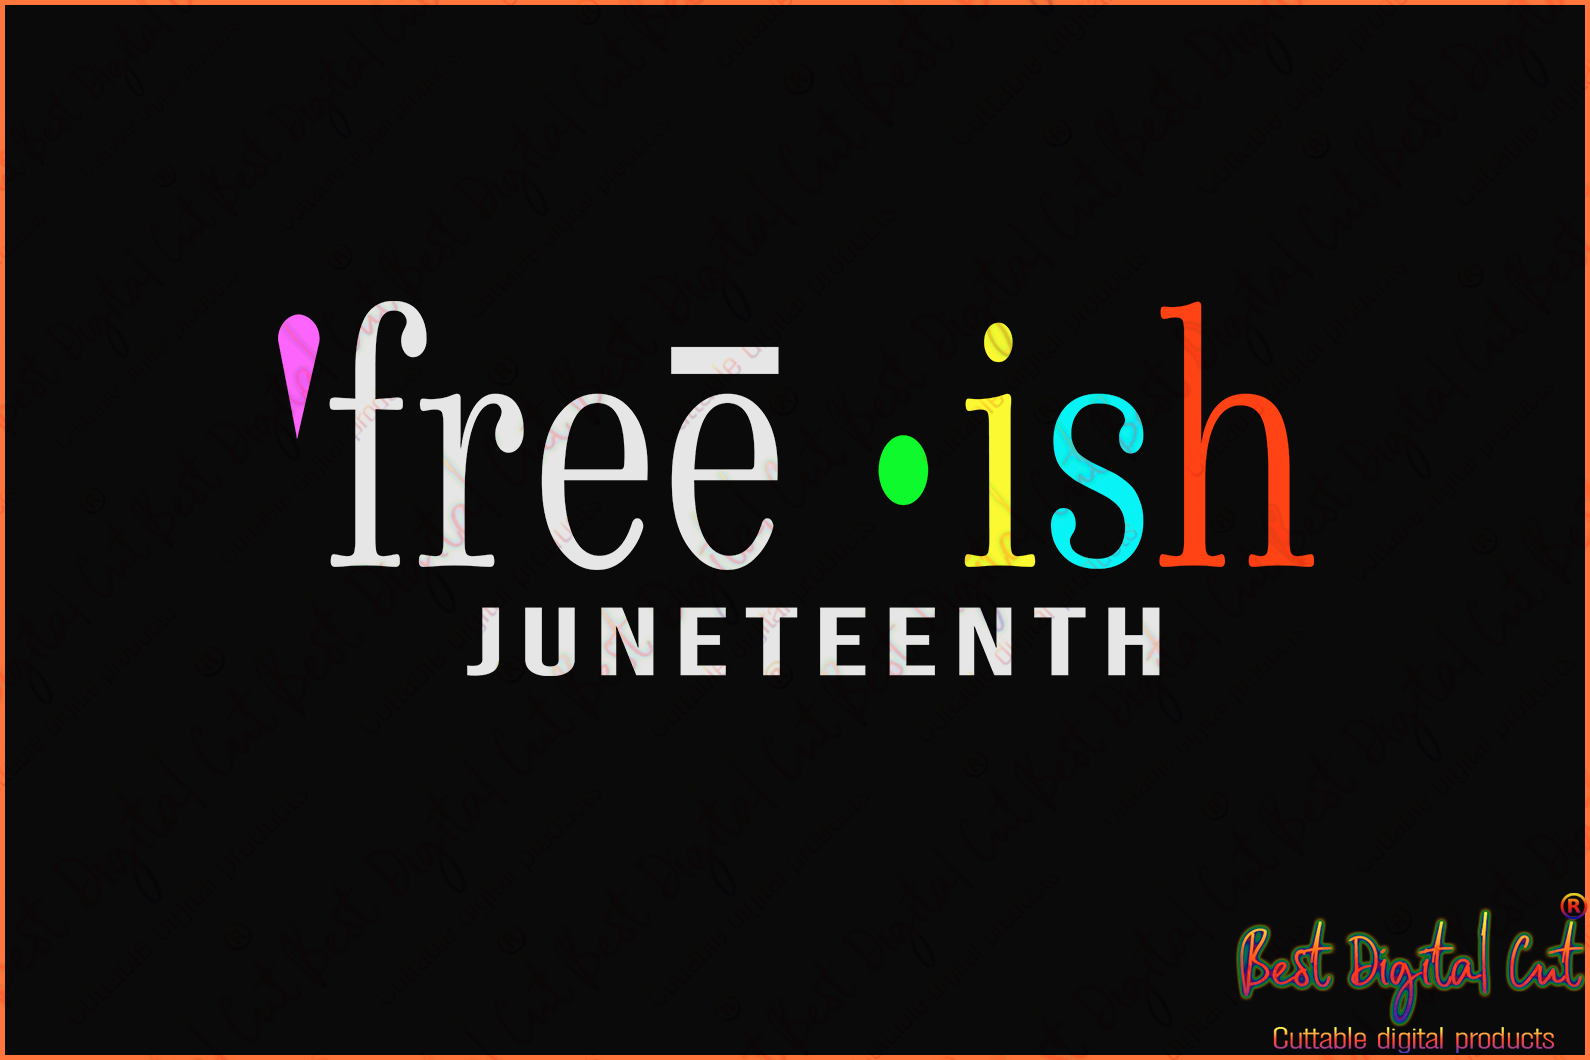 Free-ish juneteenth svg,freedom day svg,June 19th svg,emancipation day svg,1776 July 4th,independence day svg,black African hands,American pride gift,black lives matter shirt,black history month,silhouette svg, cricut svg files, decal and vinyl,